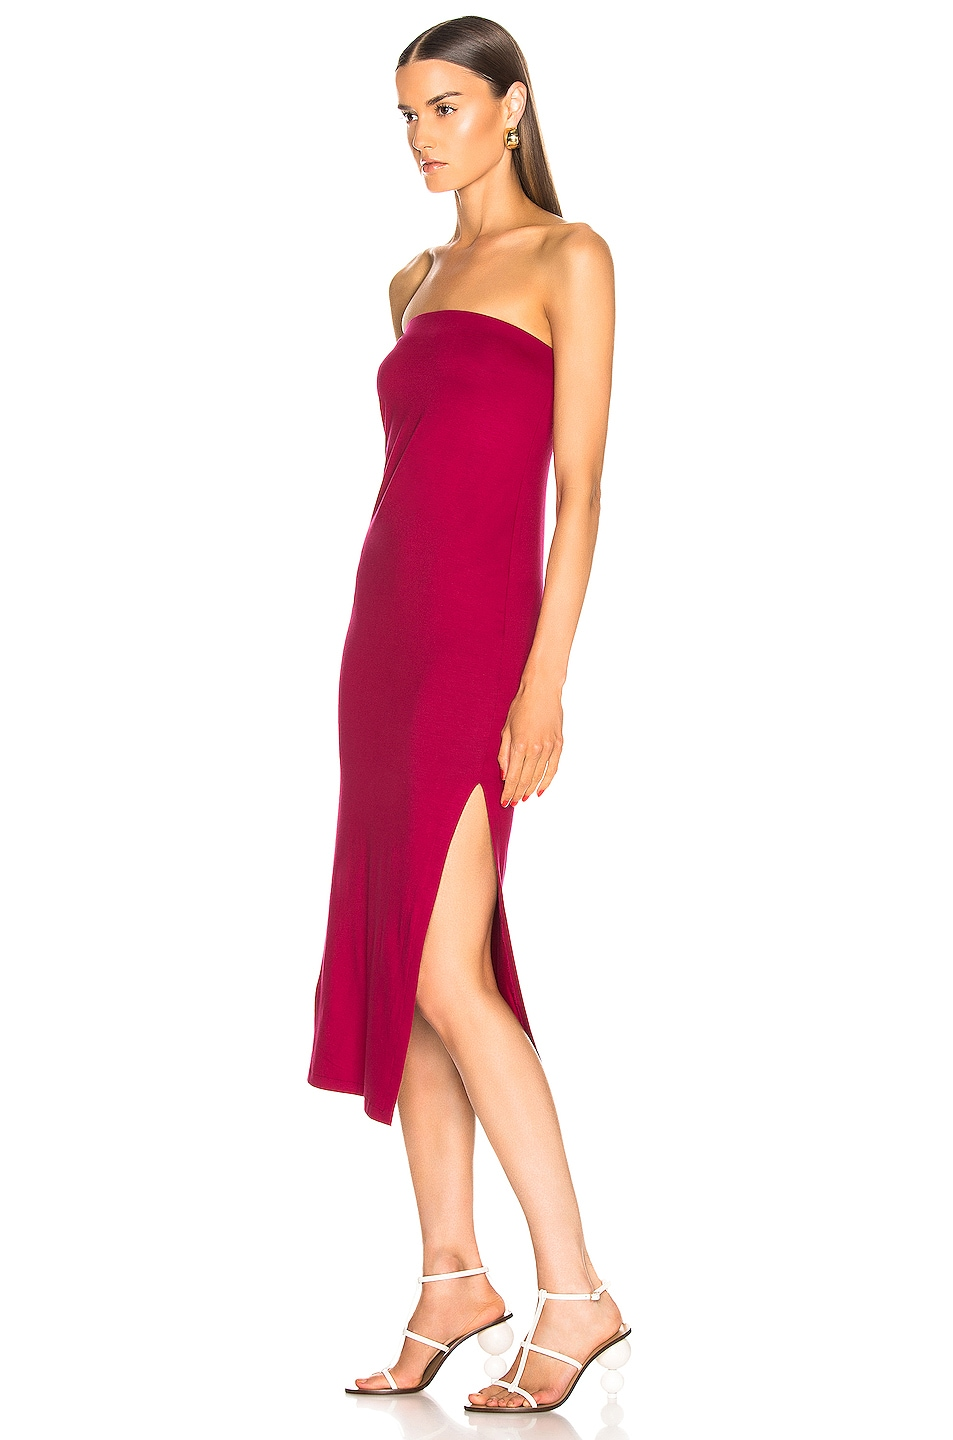 Image 3 of Enza Costa for FWRD Side Slit Dress in Fuchsia Red